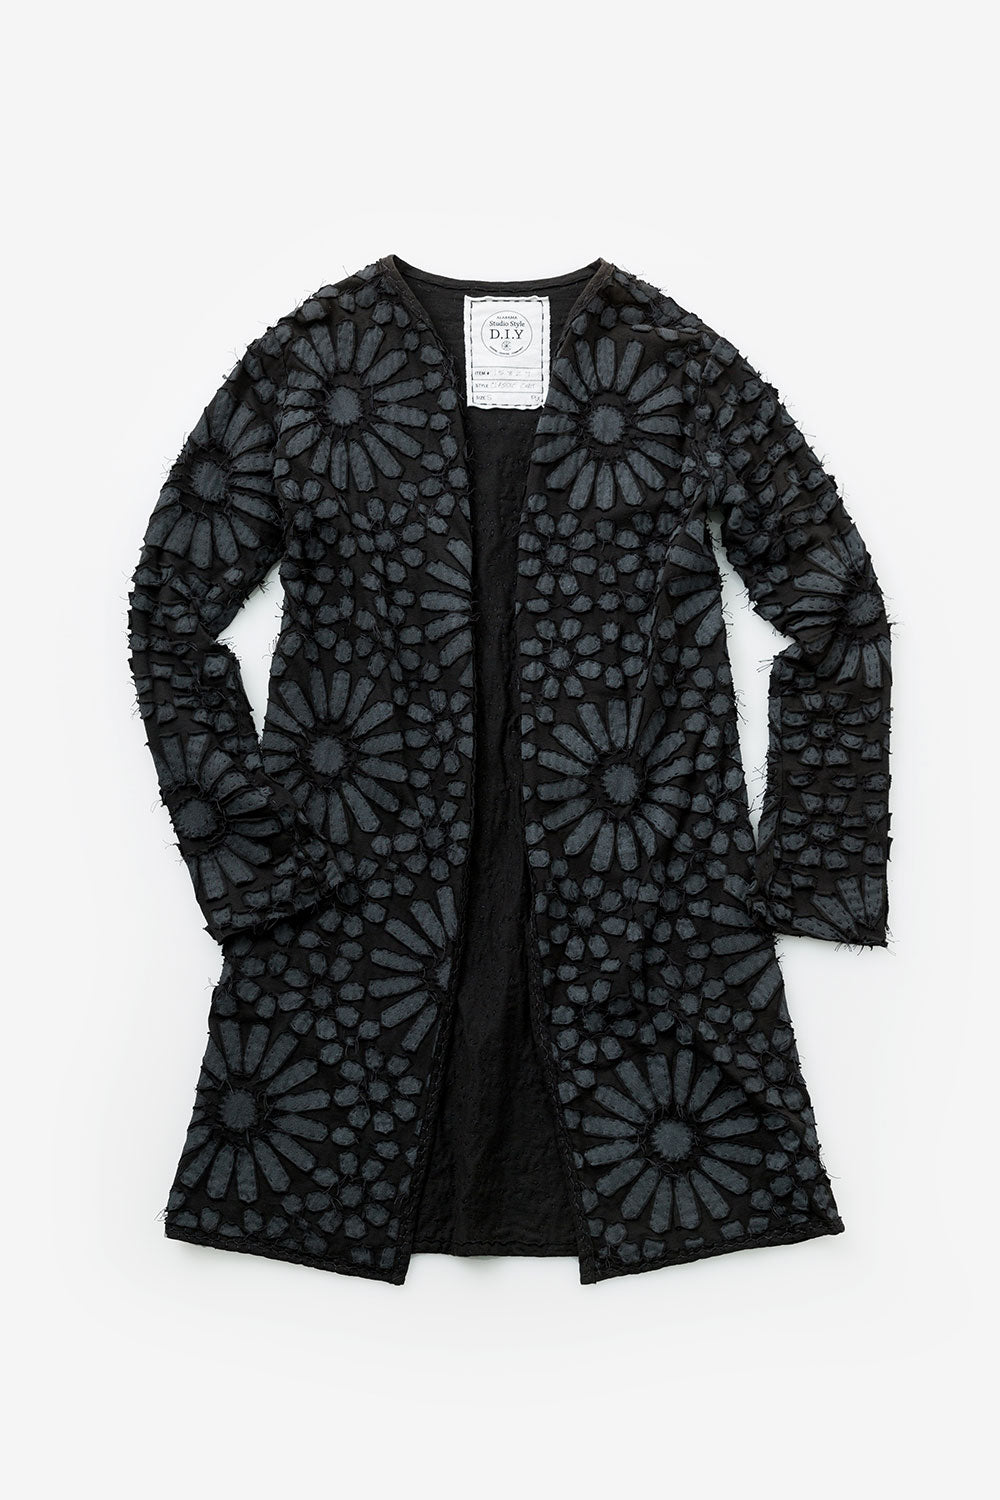 The School of Making Facets Stencil Abstract Floral Stencil Design Hand Painted DIY Clothing Jacket in Black